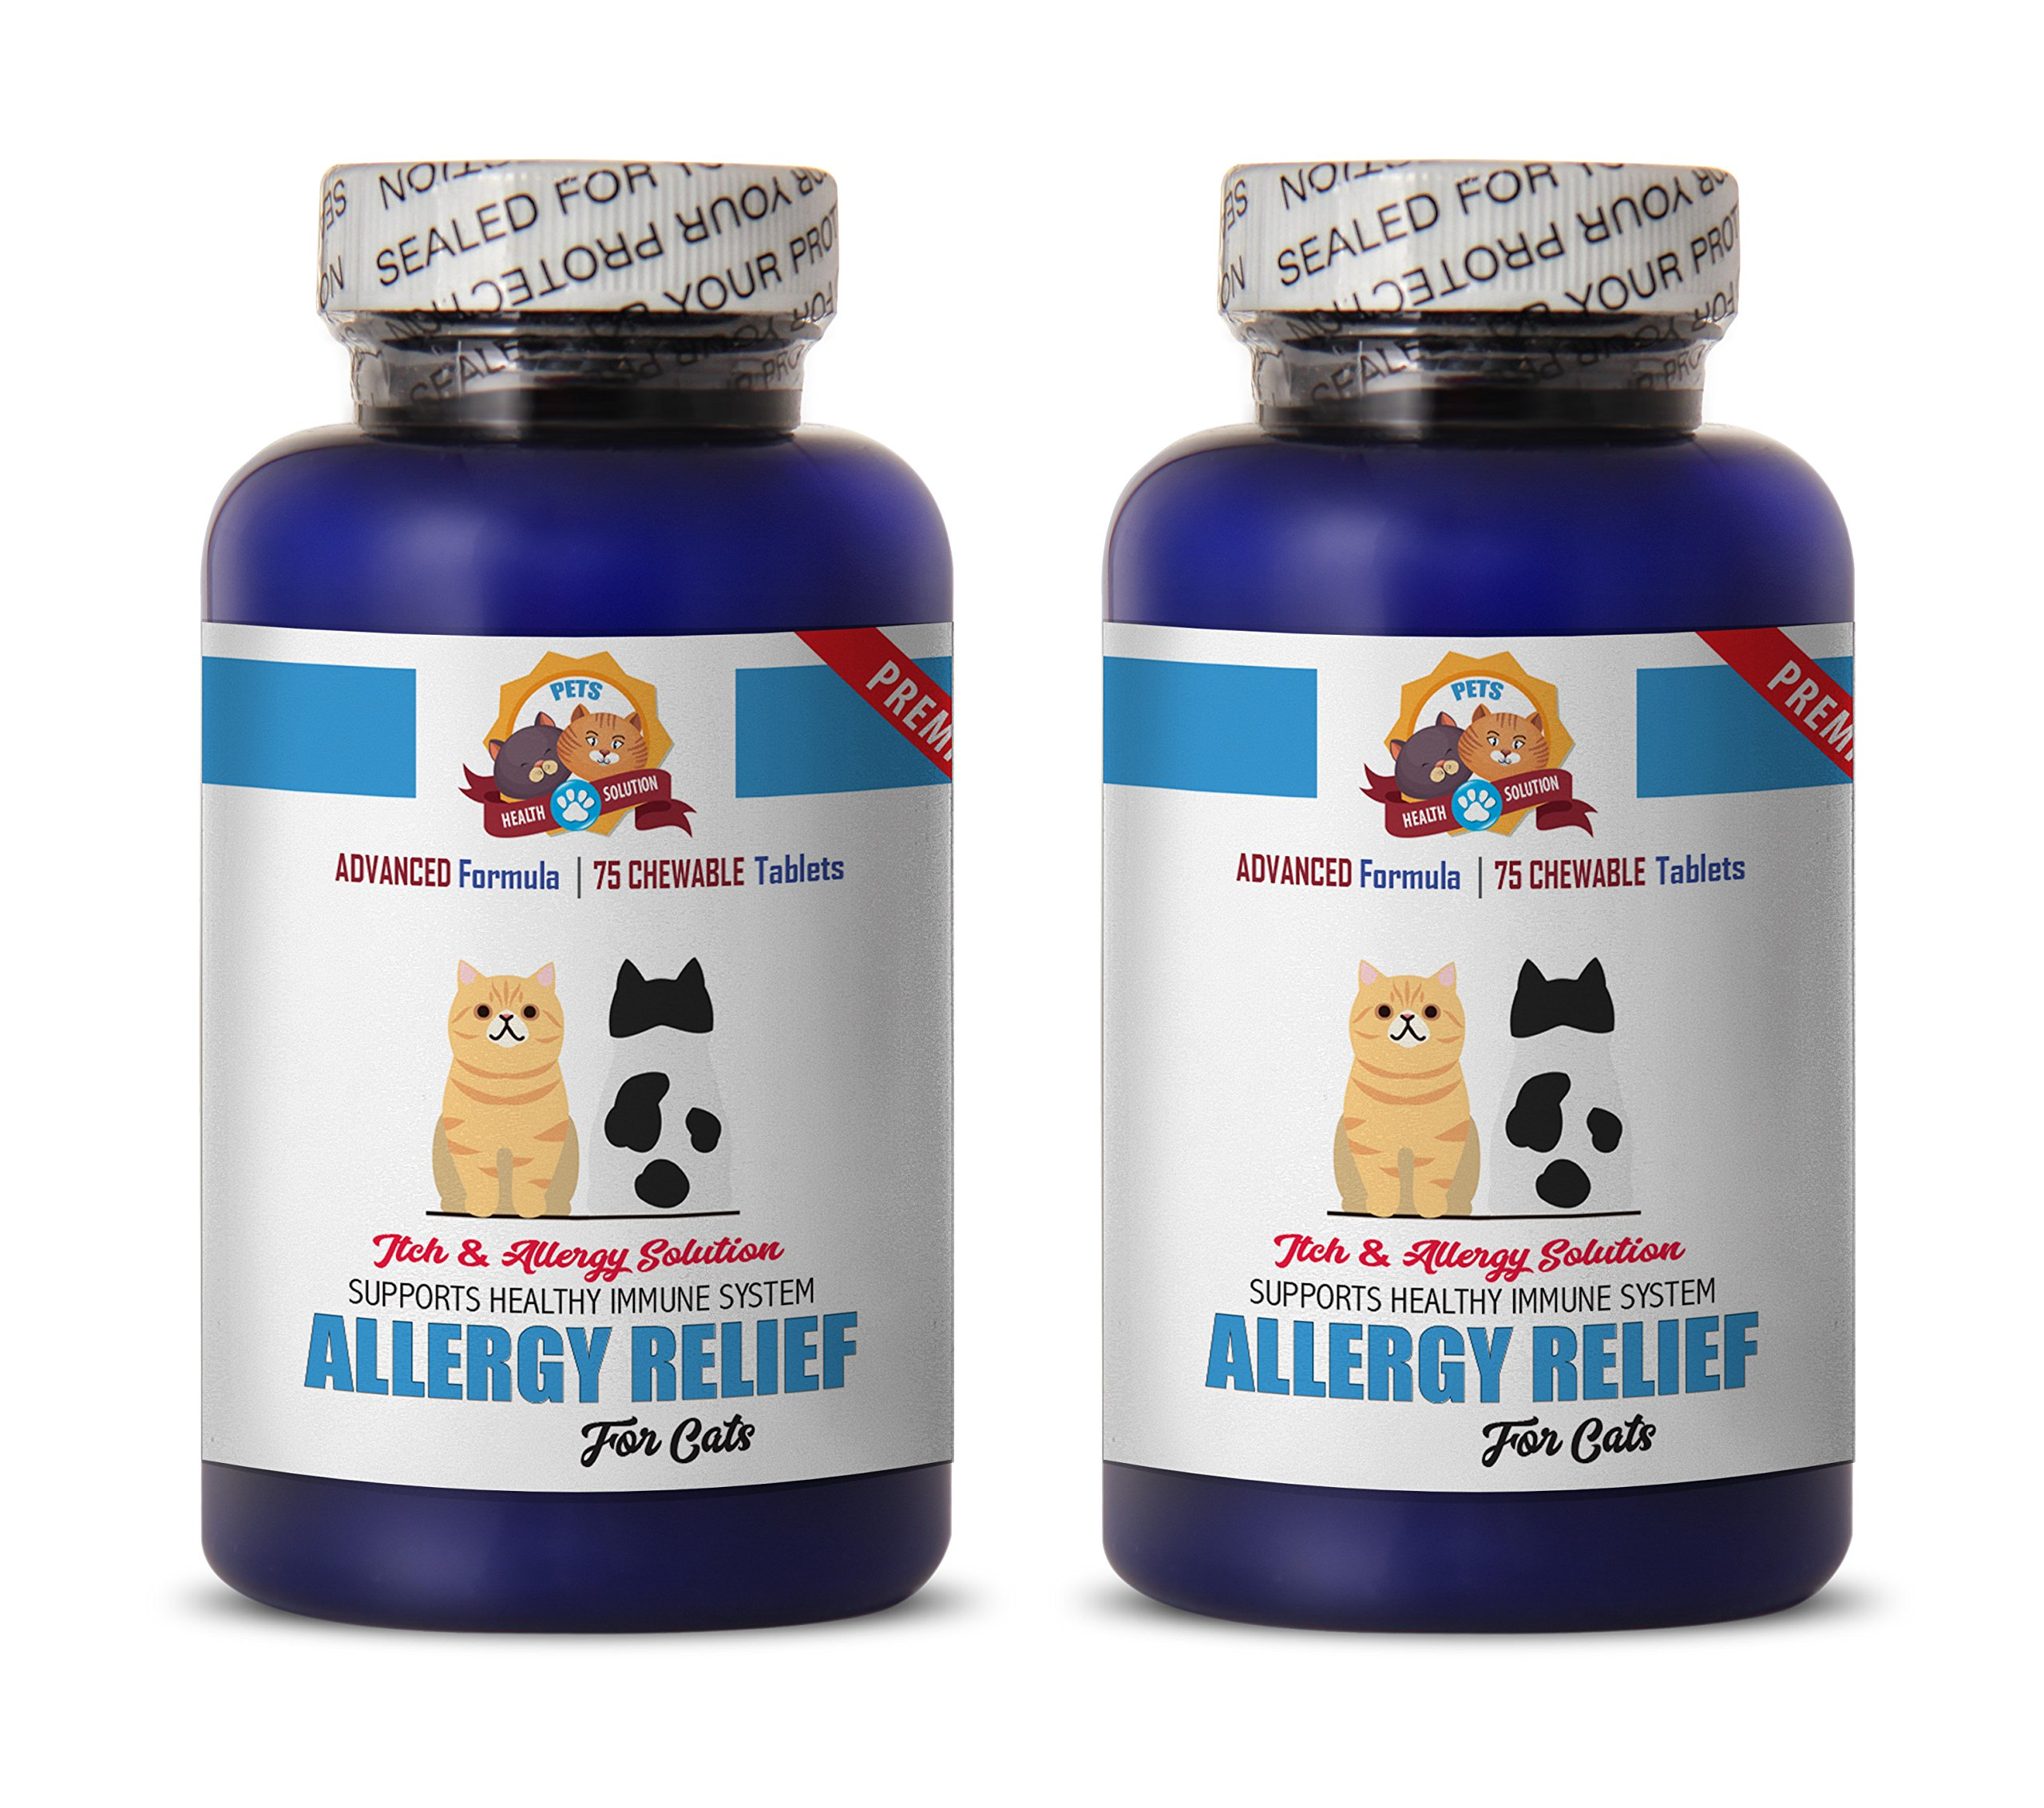 PETS HEALTH SOLUTION cat allergy blocker - PREMIUM ALLERGY RELIEF FOR CATS - IMMUNE SUPPORT - STOP THAT ITCH - TREATS - cat allergy supplement - 150 Treats (2 Bottle) by PETS HEALTH SOLUTION